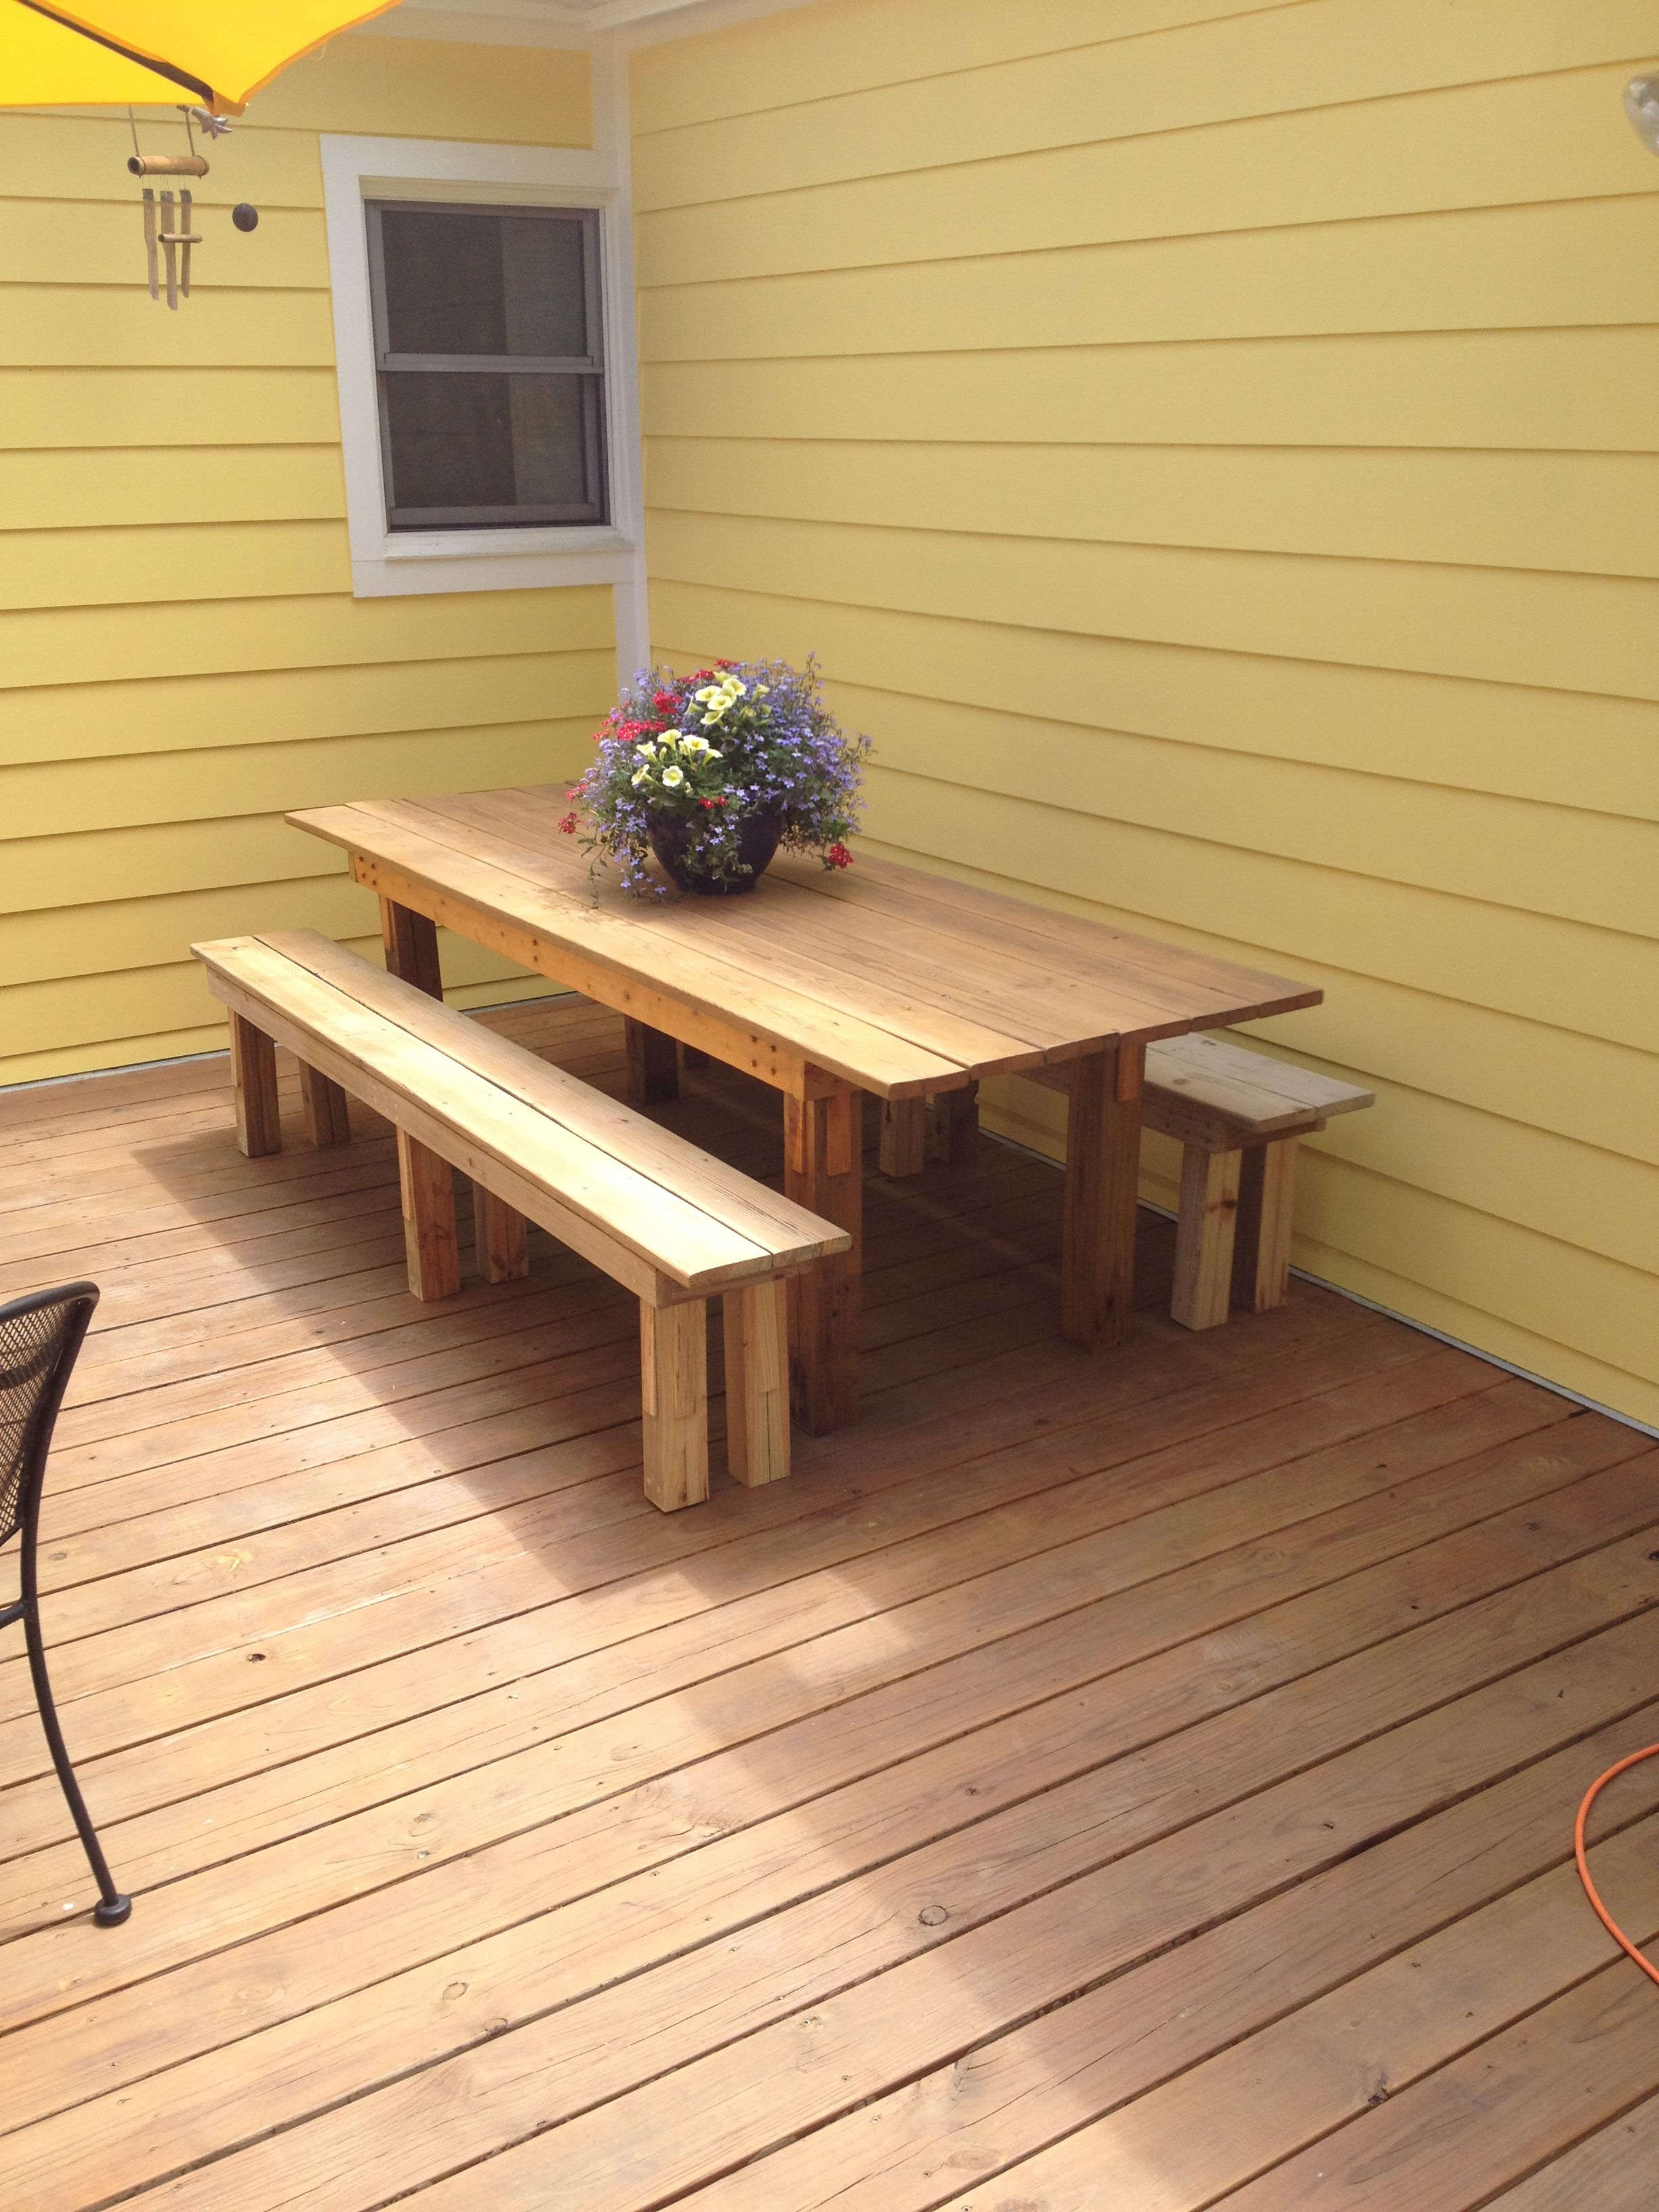 Outdoor Dining Table With Benches I Built Out Of Conserved Deck Wood Outdoor Dining Table Dining Table With Bench Outdoor Decor